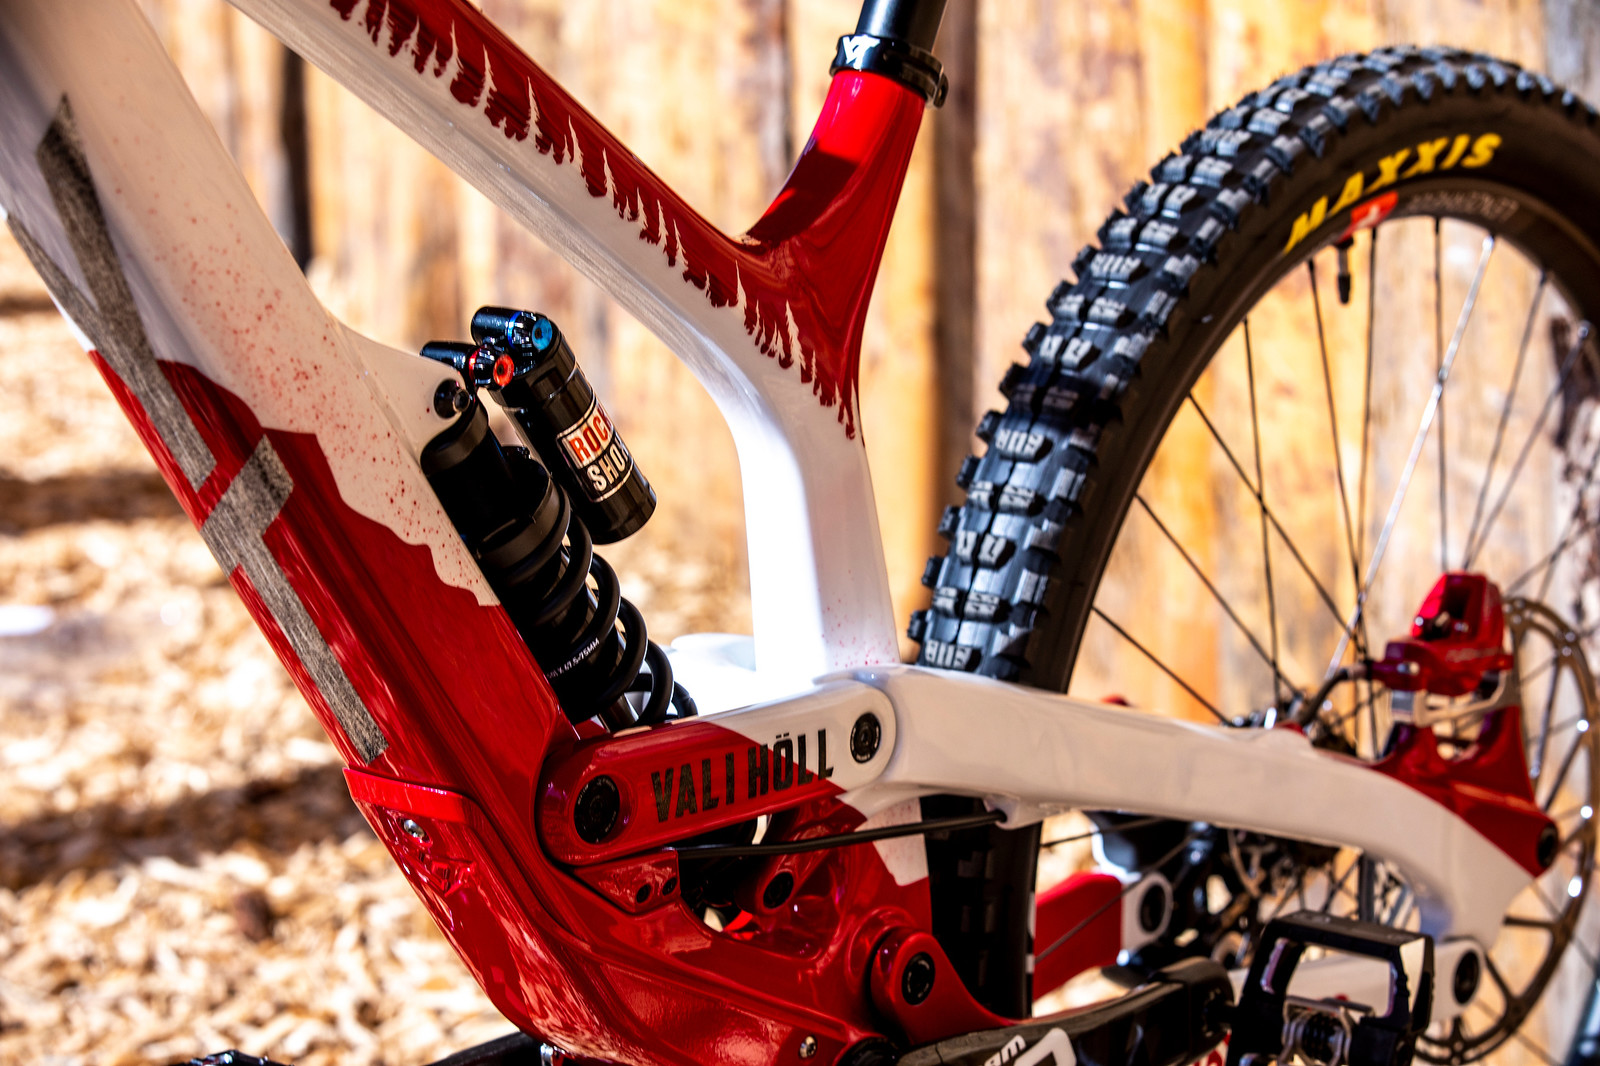 Red and White Goods - WORLD CHAMPS BIKE - Vali Holl's YT TUES - Mountain Biking Pictures - Vital MTB